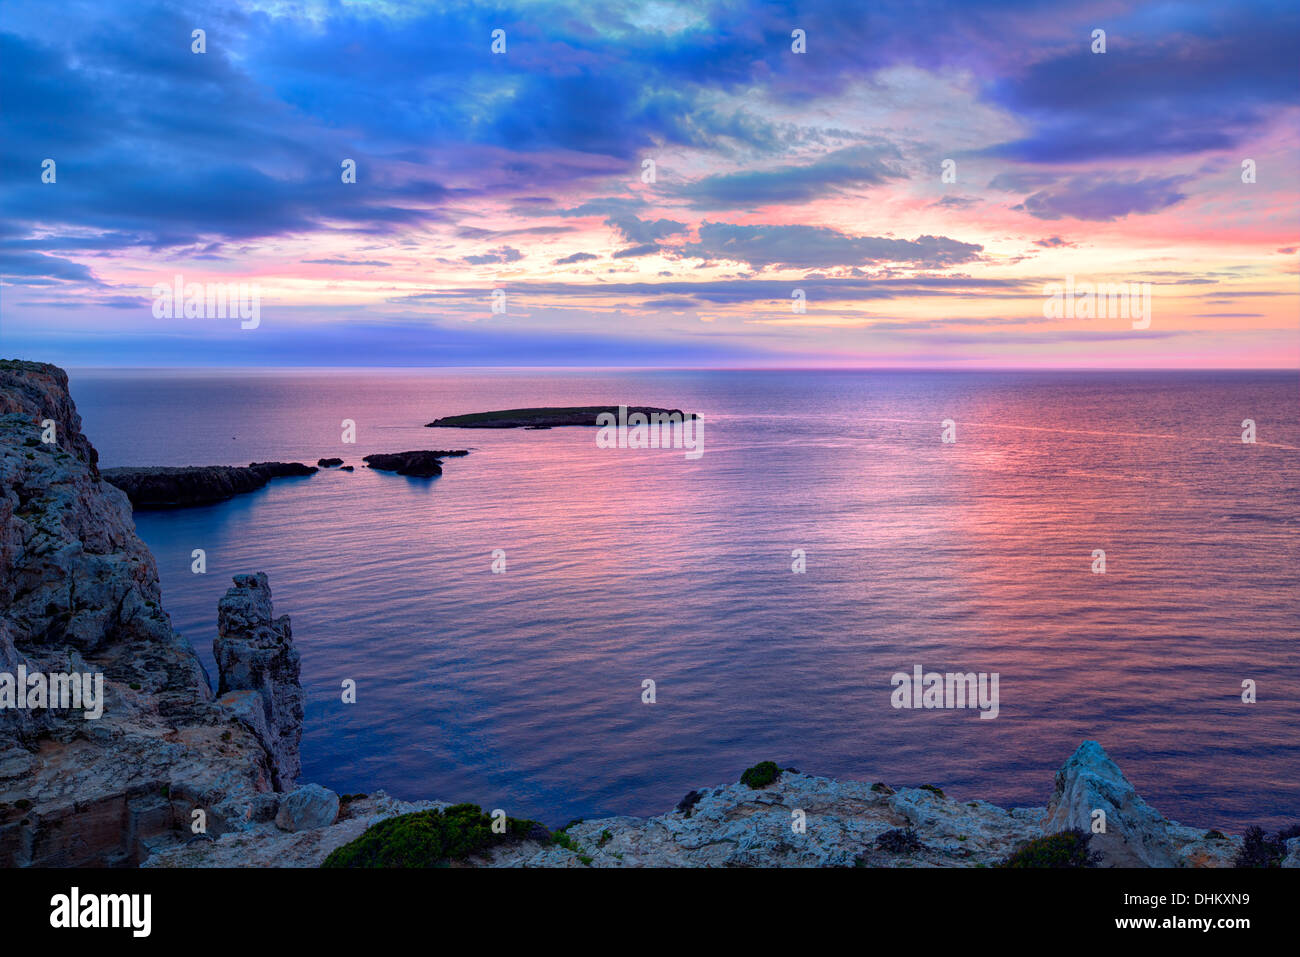 Menorca sunset in Cap de Caballeria cape at Balearic Islands es Mercadal - Stock Image